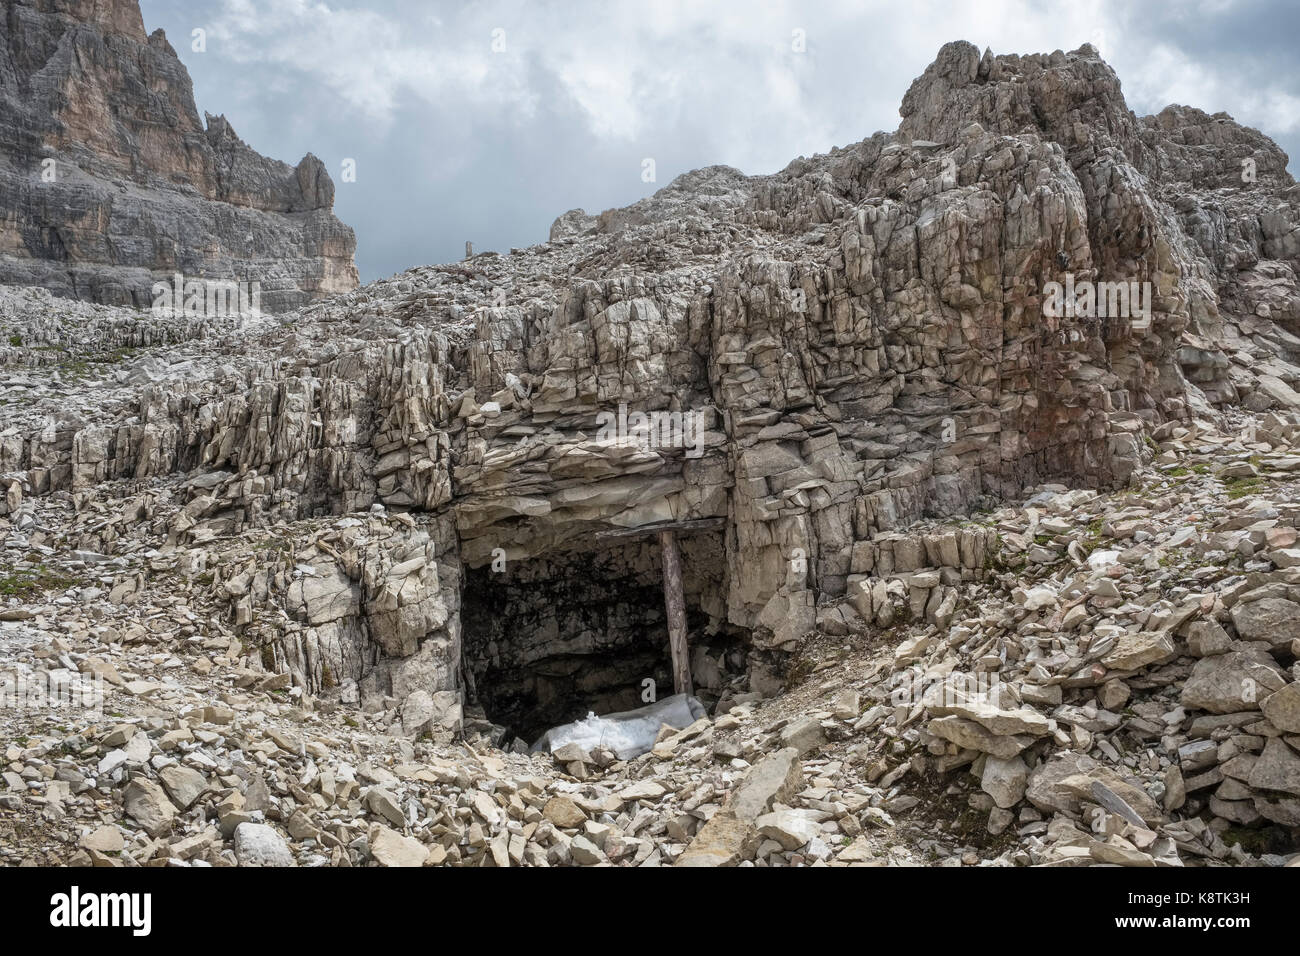 The Dolomites, Northern Italy. First World War dugout on the high altitude front line between Italy and Austria - Stock Image